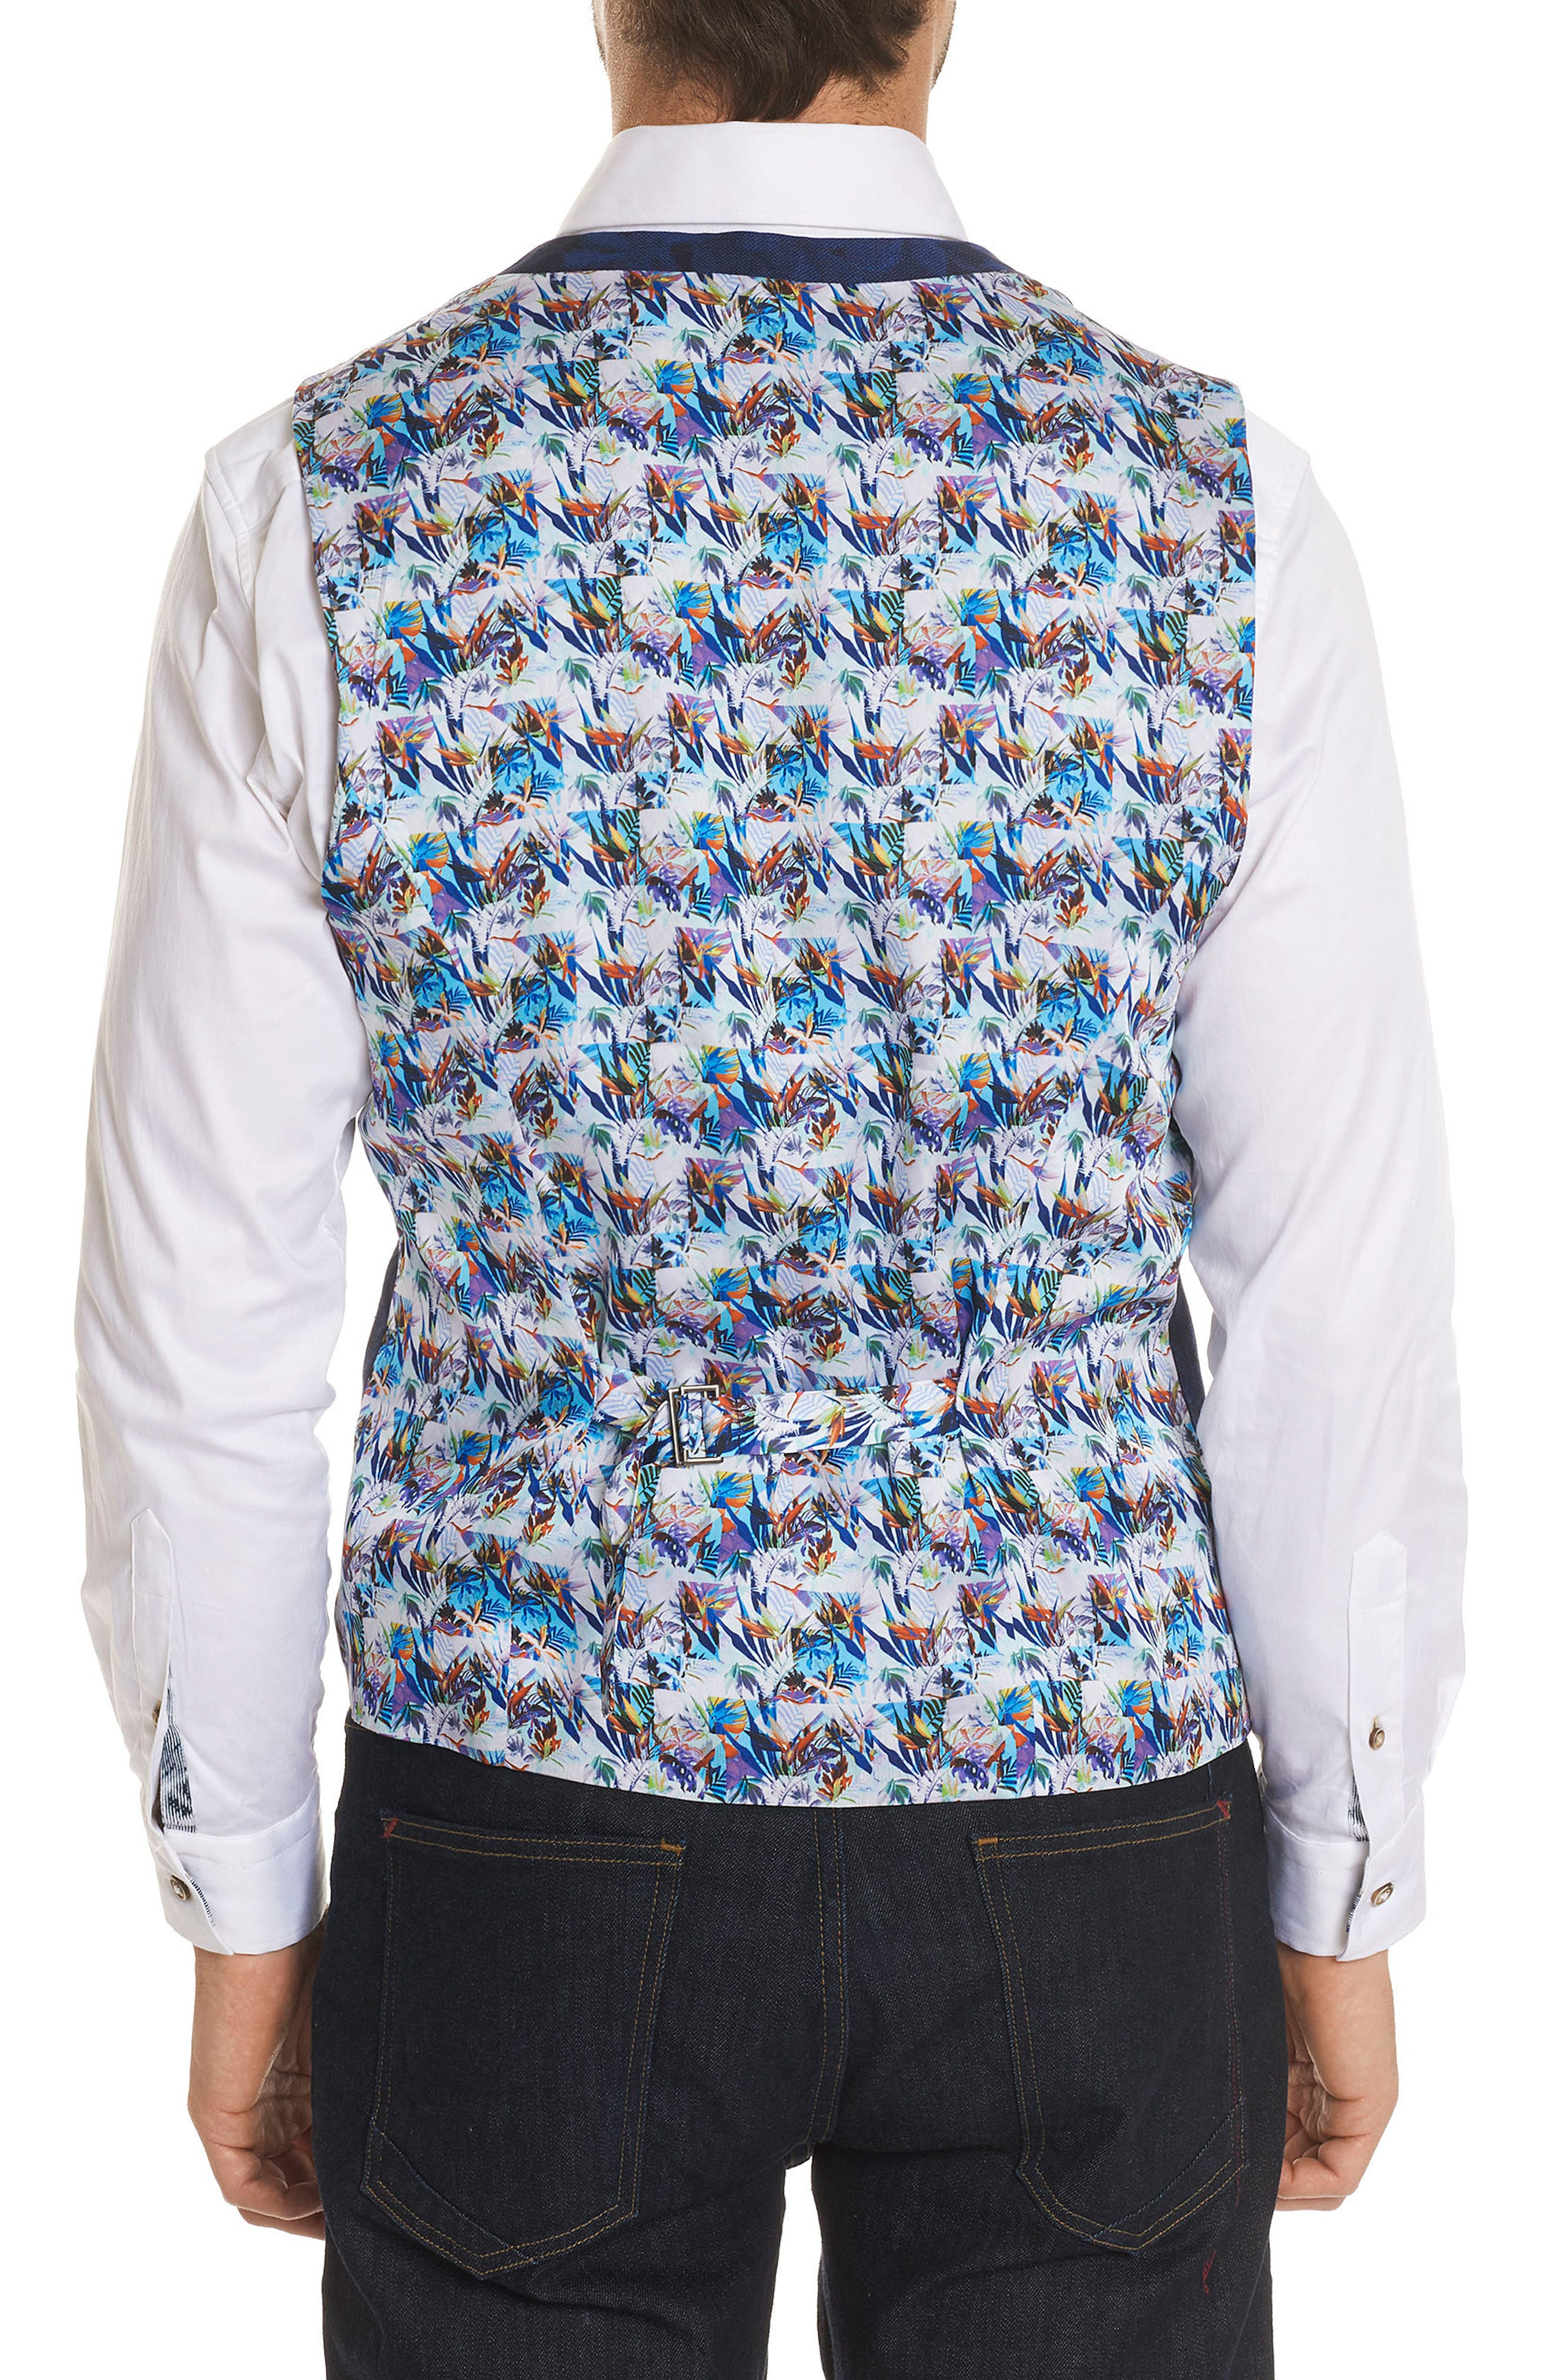 Nunez Regular Fit Linen & Cotton Vest,                             Alternate thumbnail 2, color,                             Blue